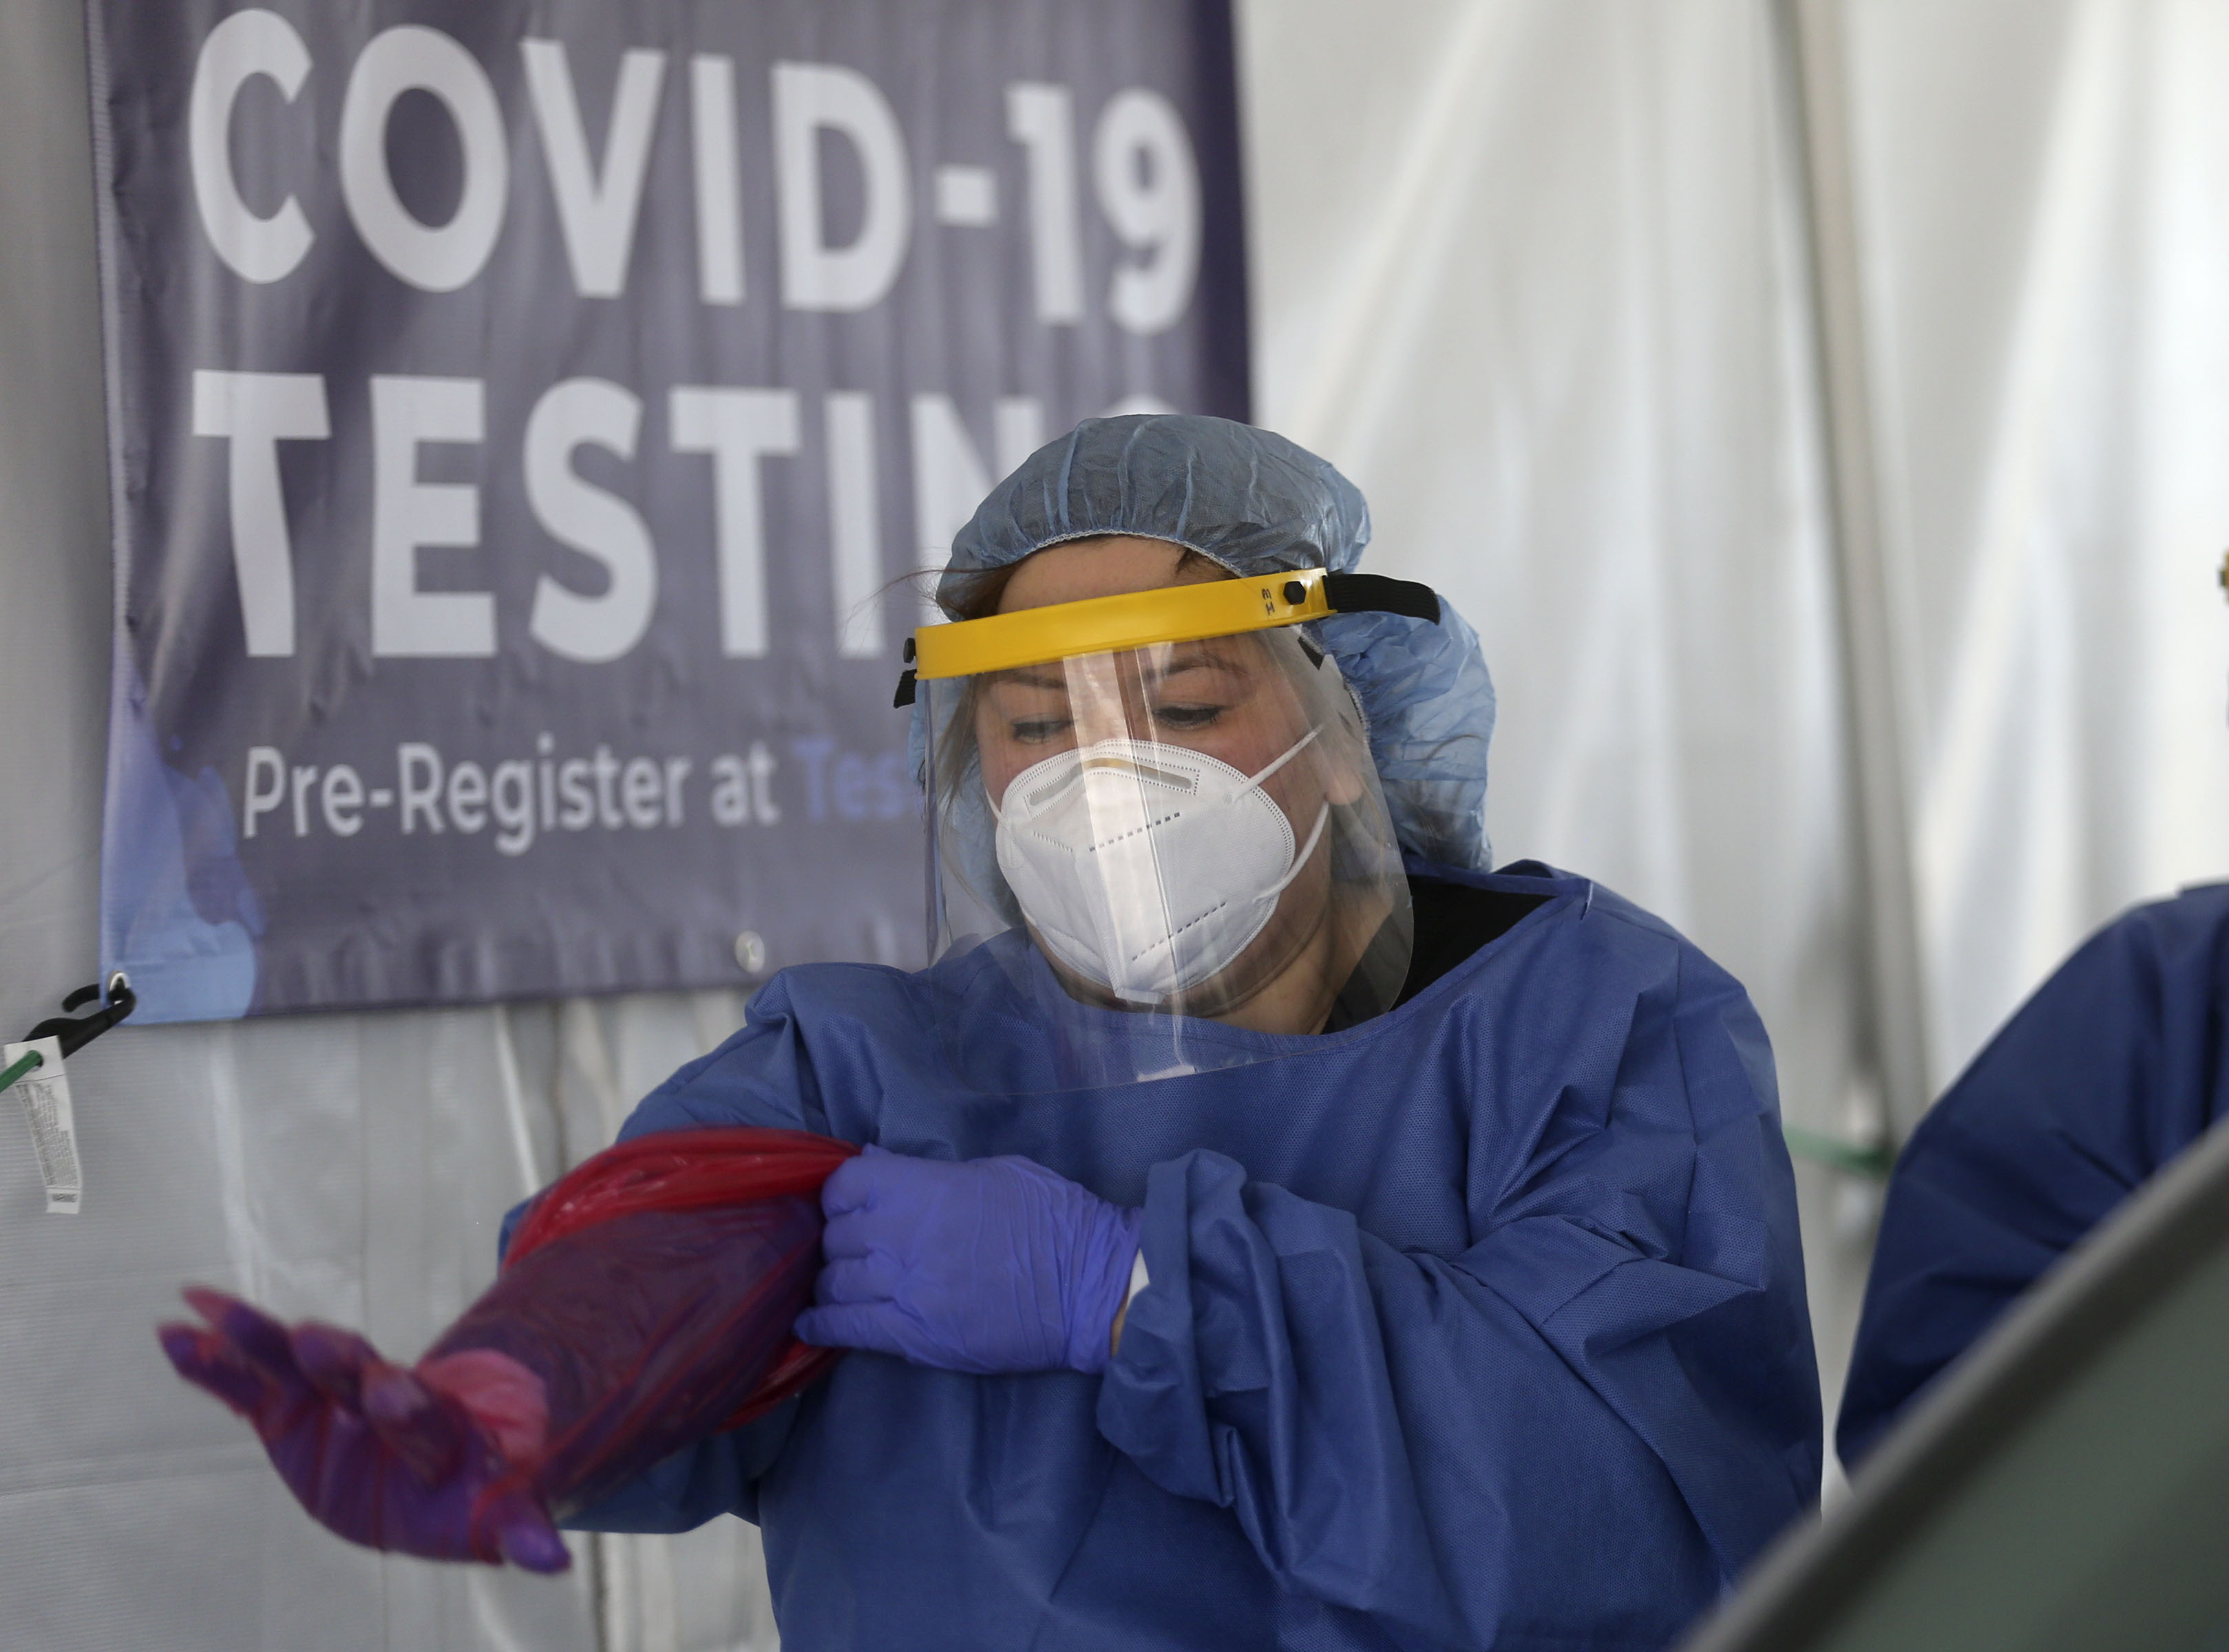 Eve Kovacs, infection control nurse, puts on a fresh glove before administering a COVID-19 test at a TestUtah free testing site outside of the Kearns Recreation Center at Oquirrh Park in Kearns on Wednesday, July 8, 2020.